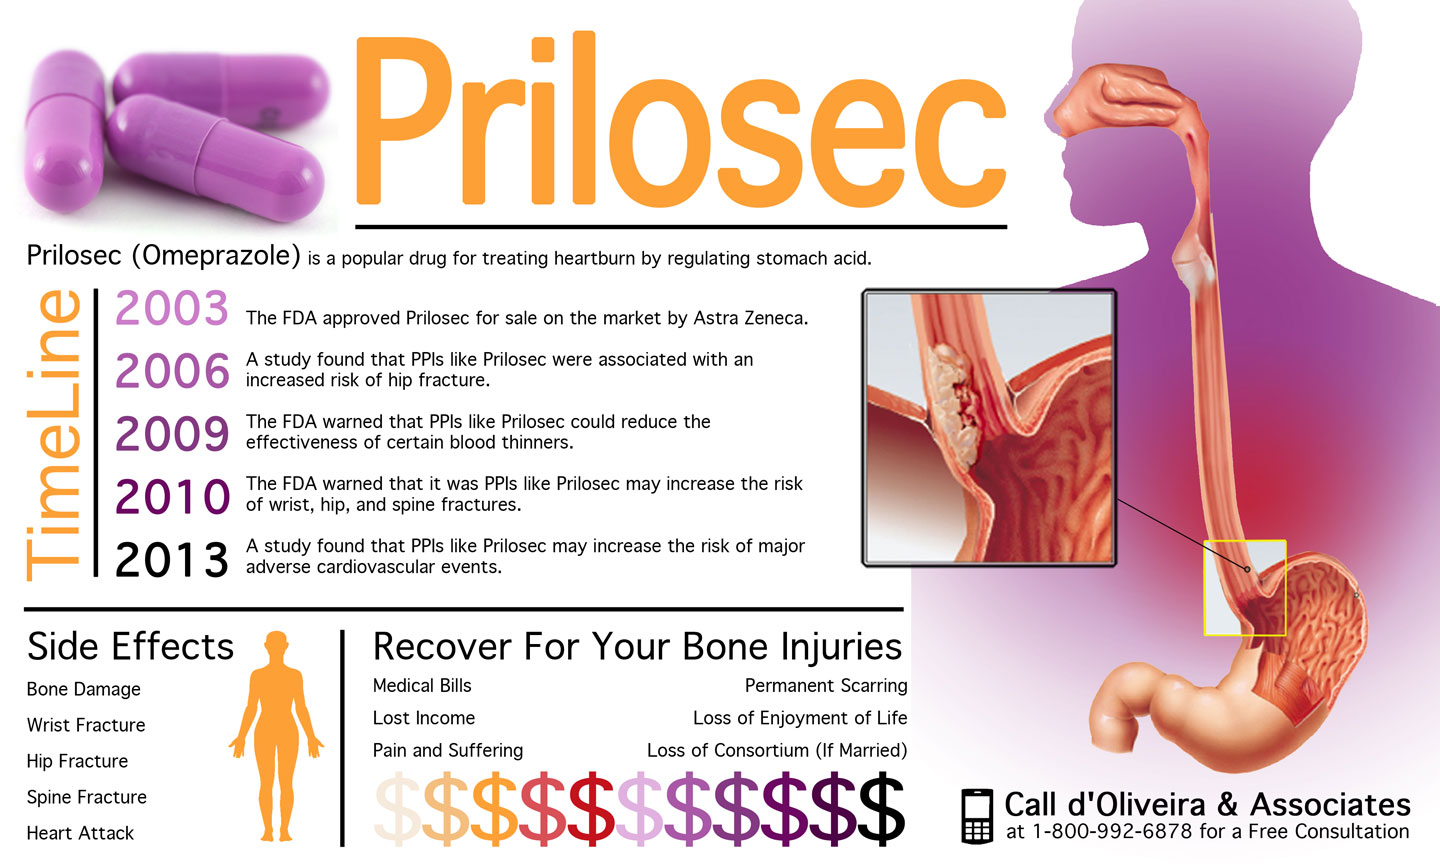 injury lawyer releases new information graphic on the alleged risks of heartburn drugs like prilosec